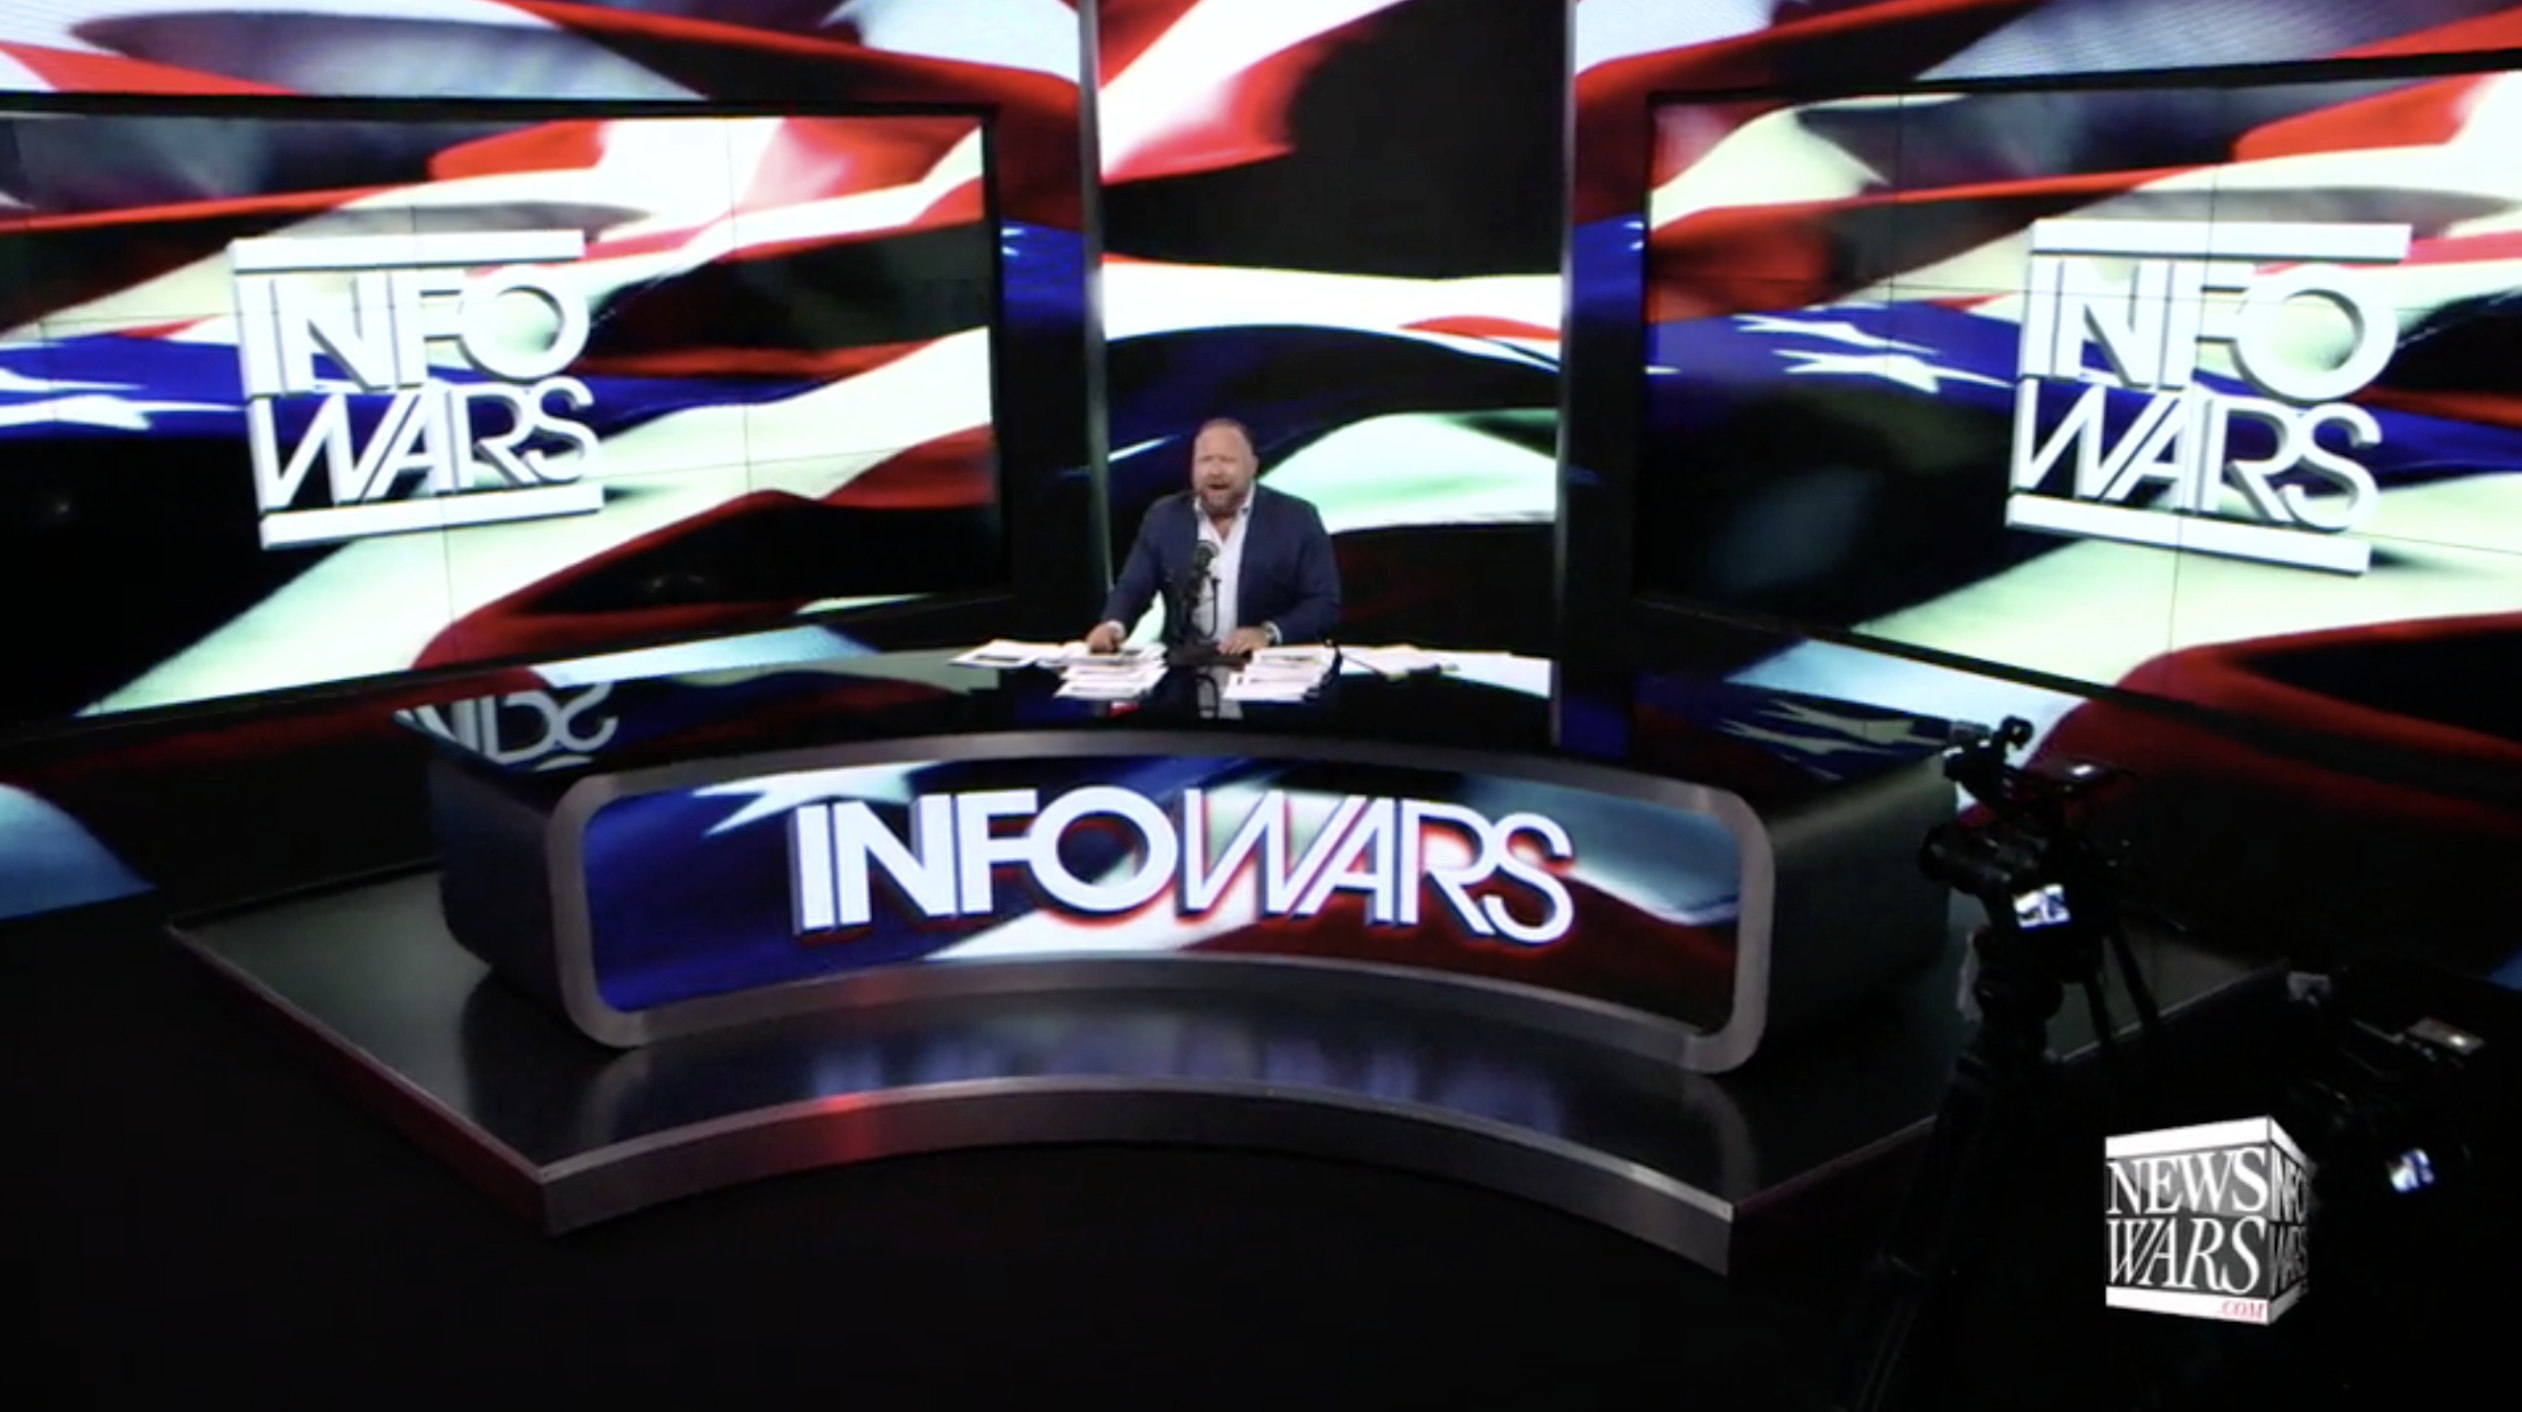 Alex Jones Infowars Studio EXZM August 12th 2020